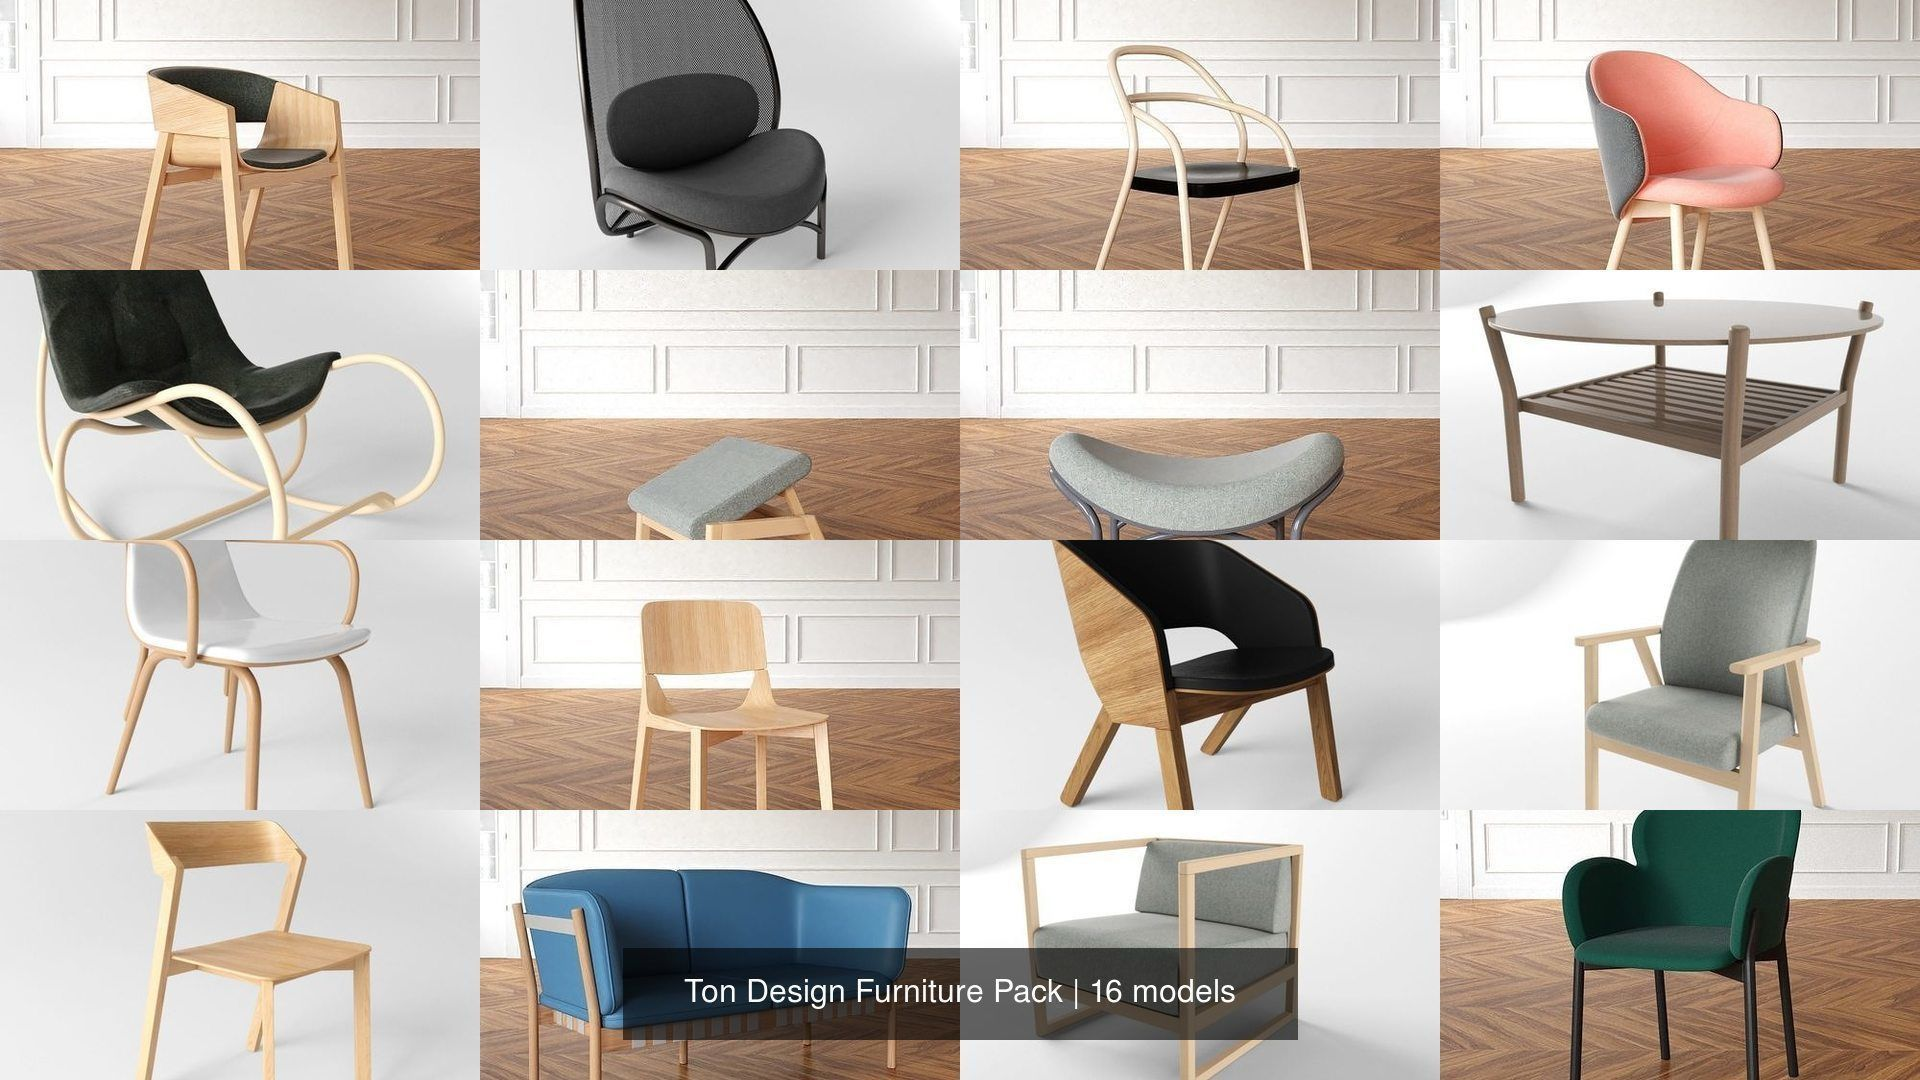 Ton Design 18 Furniture Model Pack